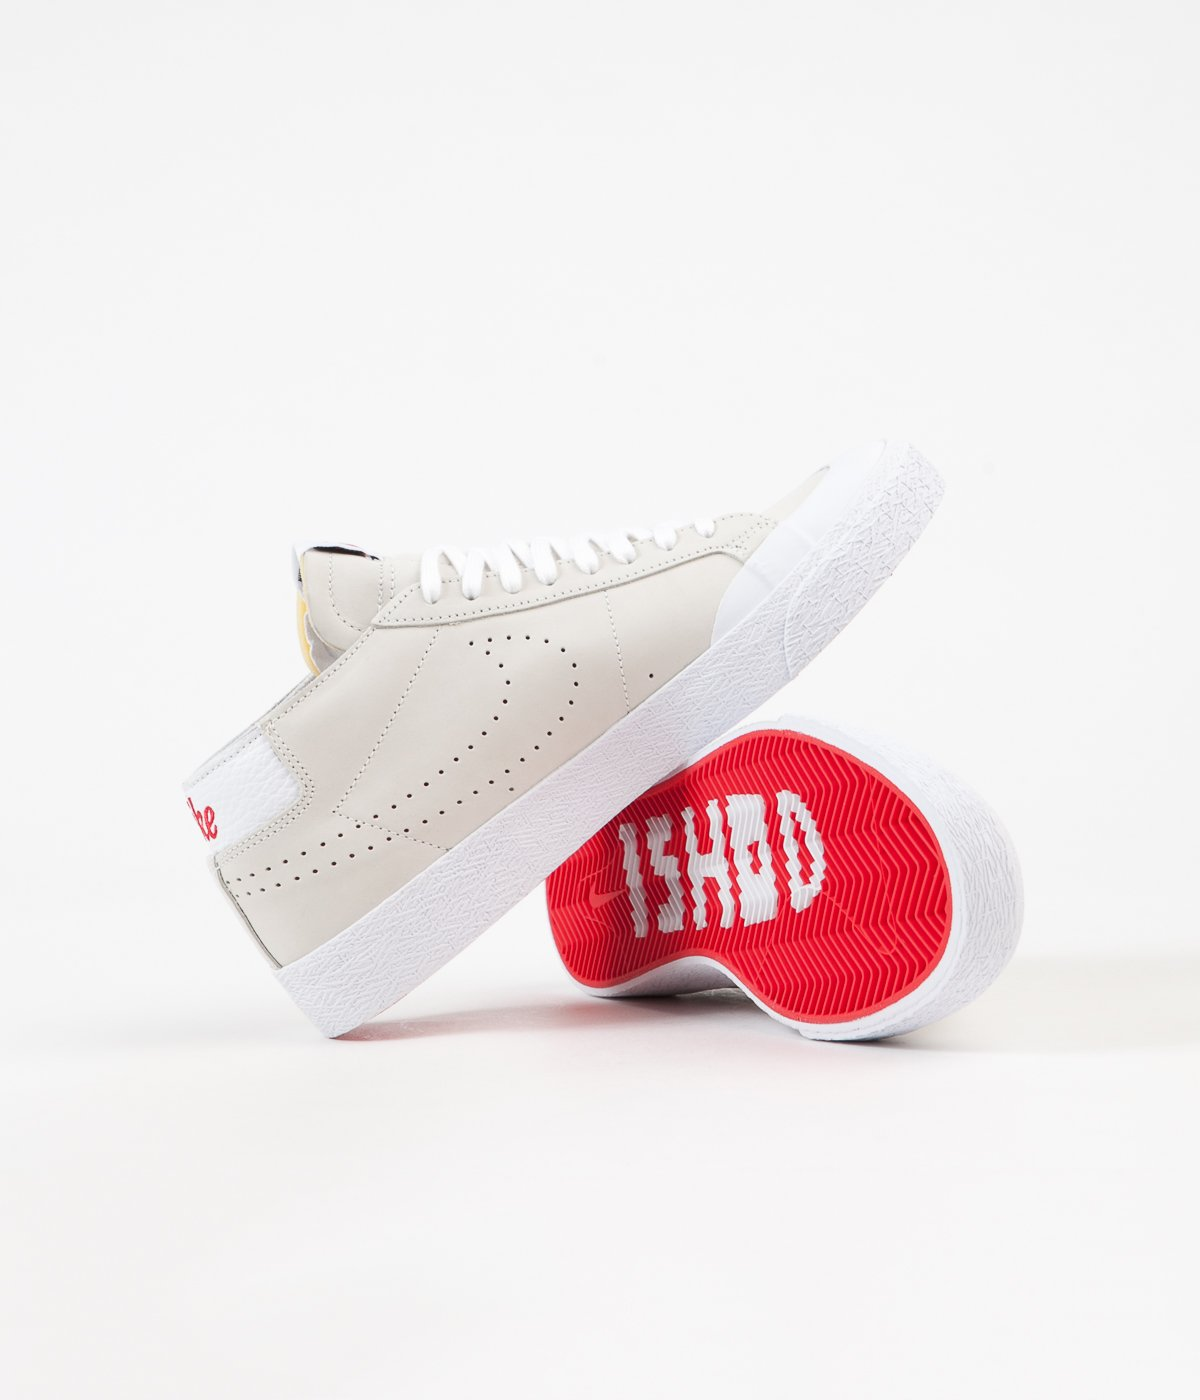 reputable site 598bb 5c9d4 Nike SB | Ishod Wair | Back On My BS - BOARD ACTION